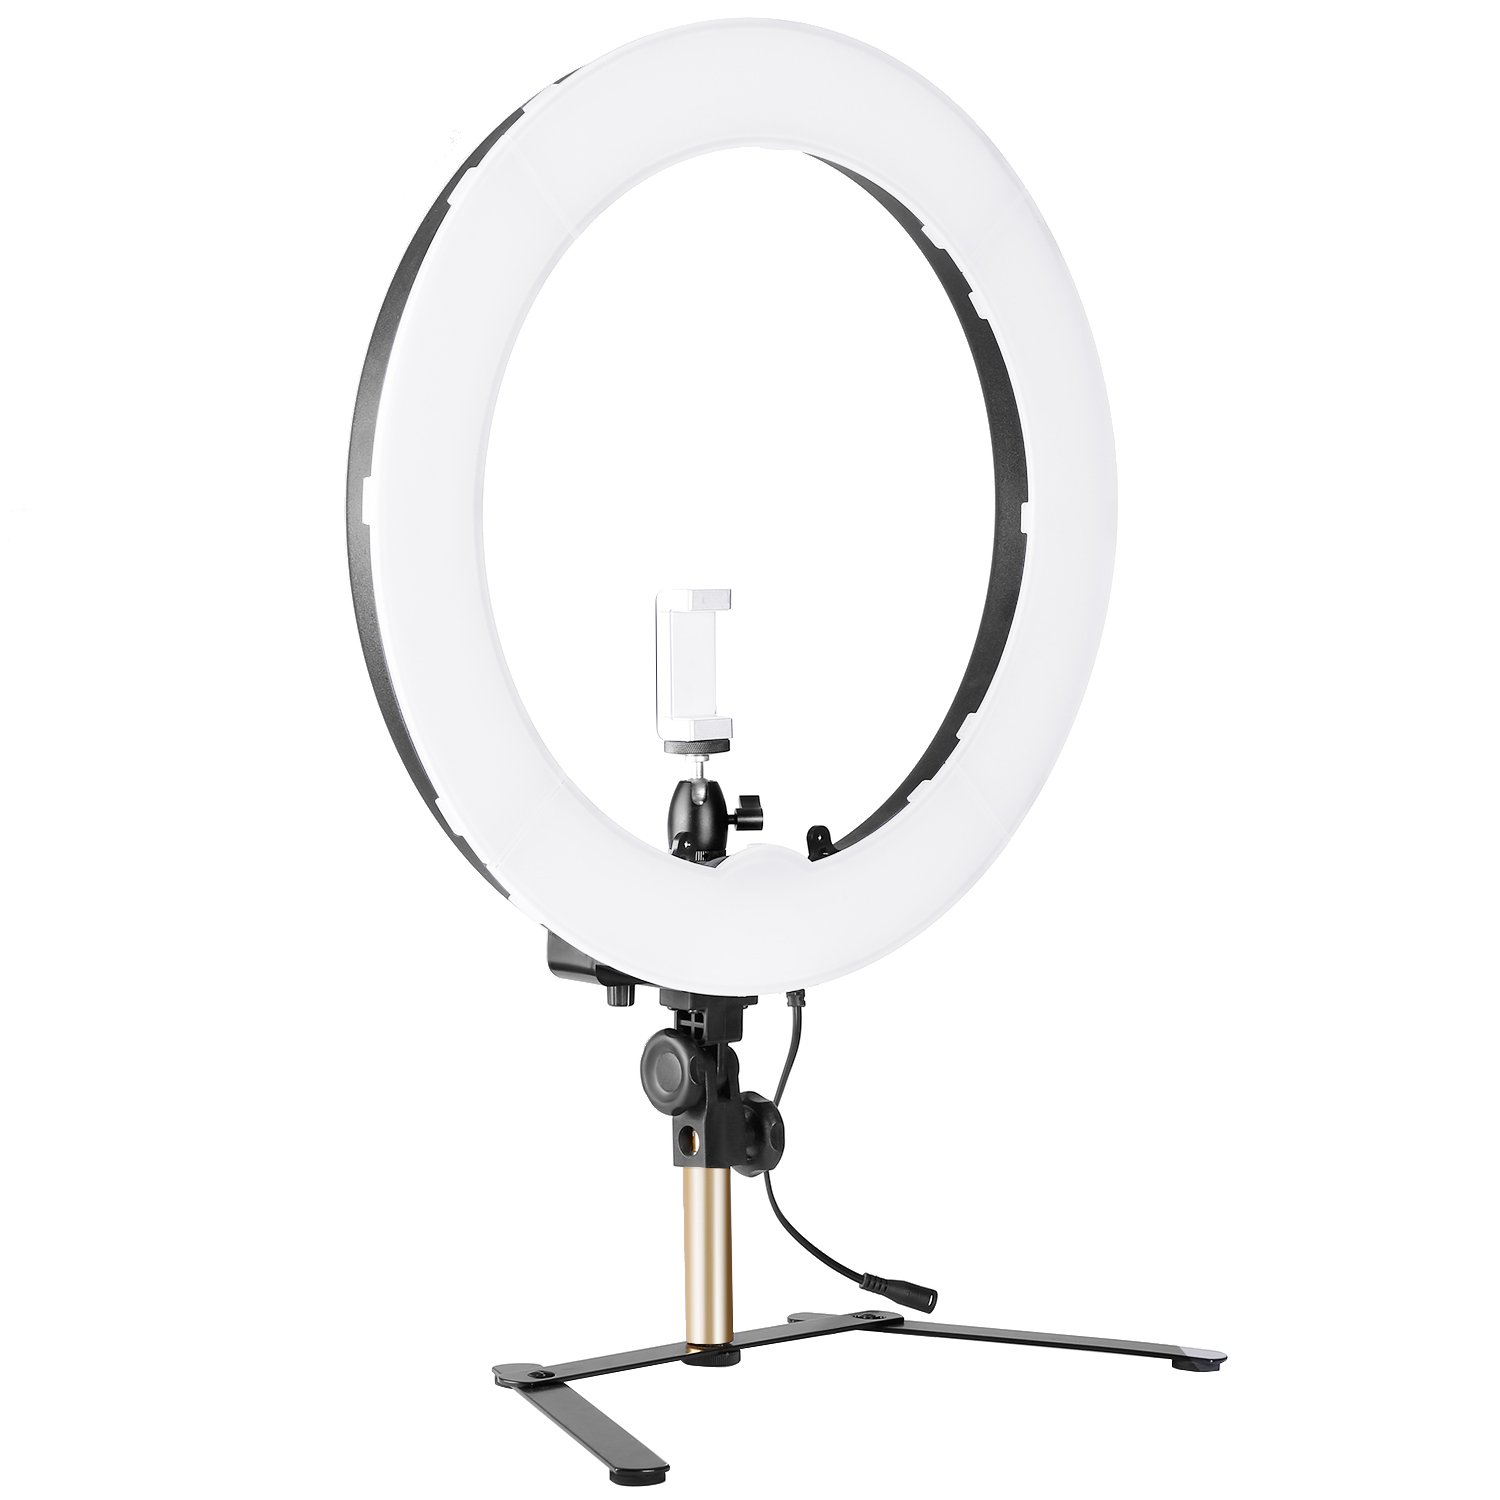 Neewer 18-inch Outer Dimmable Tabletop Ring Light Kit for Photo Studio Portrait Video Shooting, Includes: 5500K SMD LED Dimmable Ring Video Light, Support Bracket, Ball Head, Phone Holder (US/EU Plug) by Neewer (Image #1)